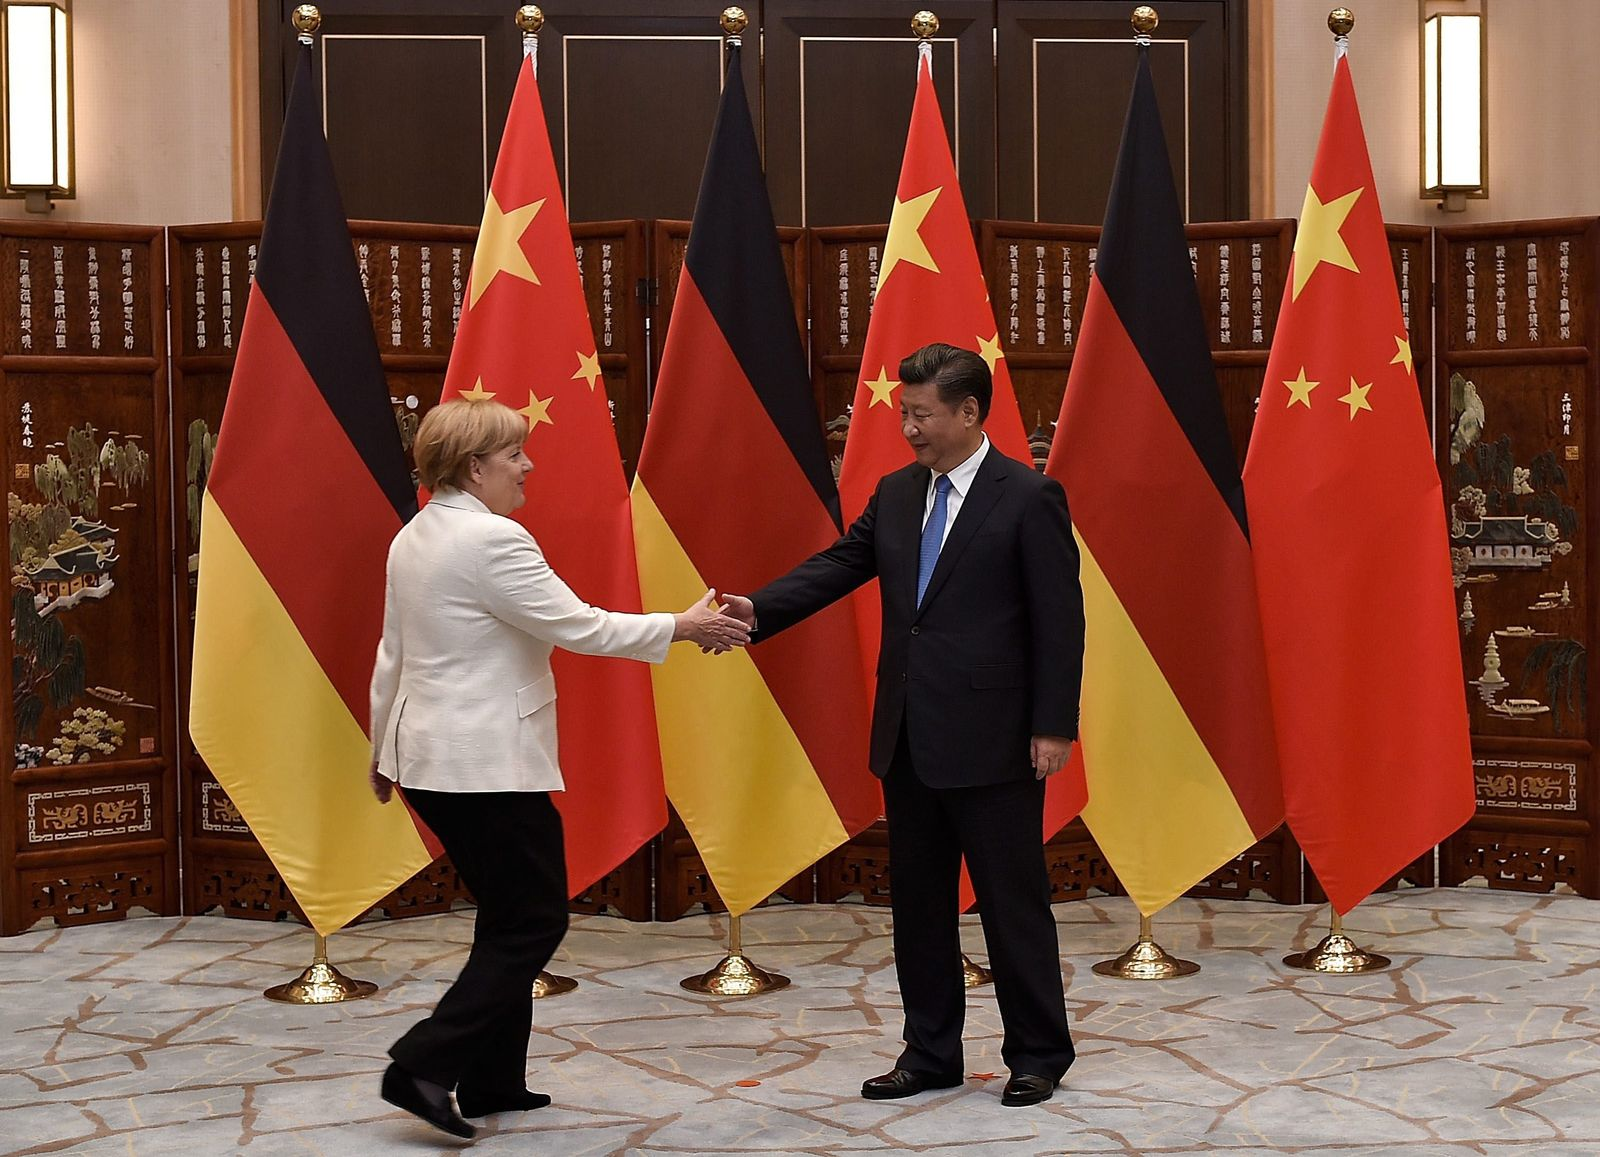 G20 Summit in Hangzhou / Merkel / XI Jinping